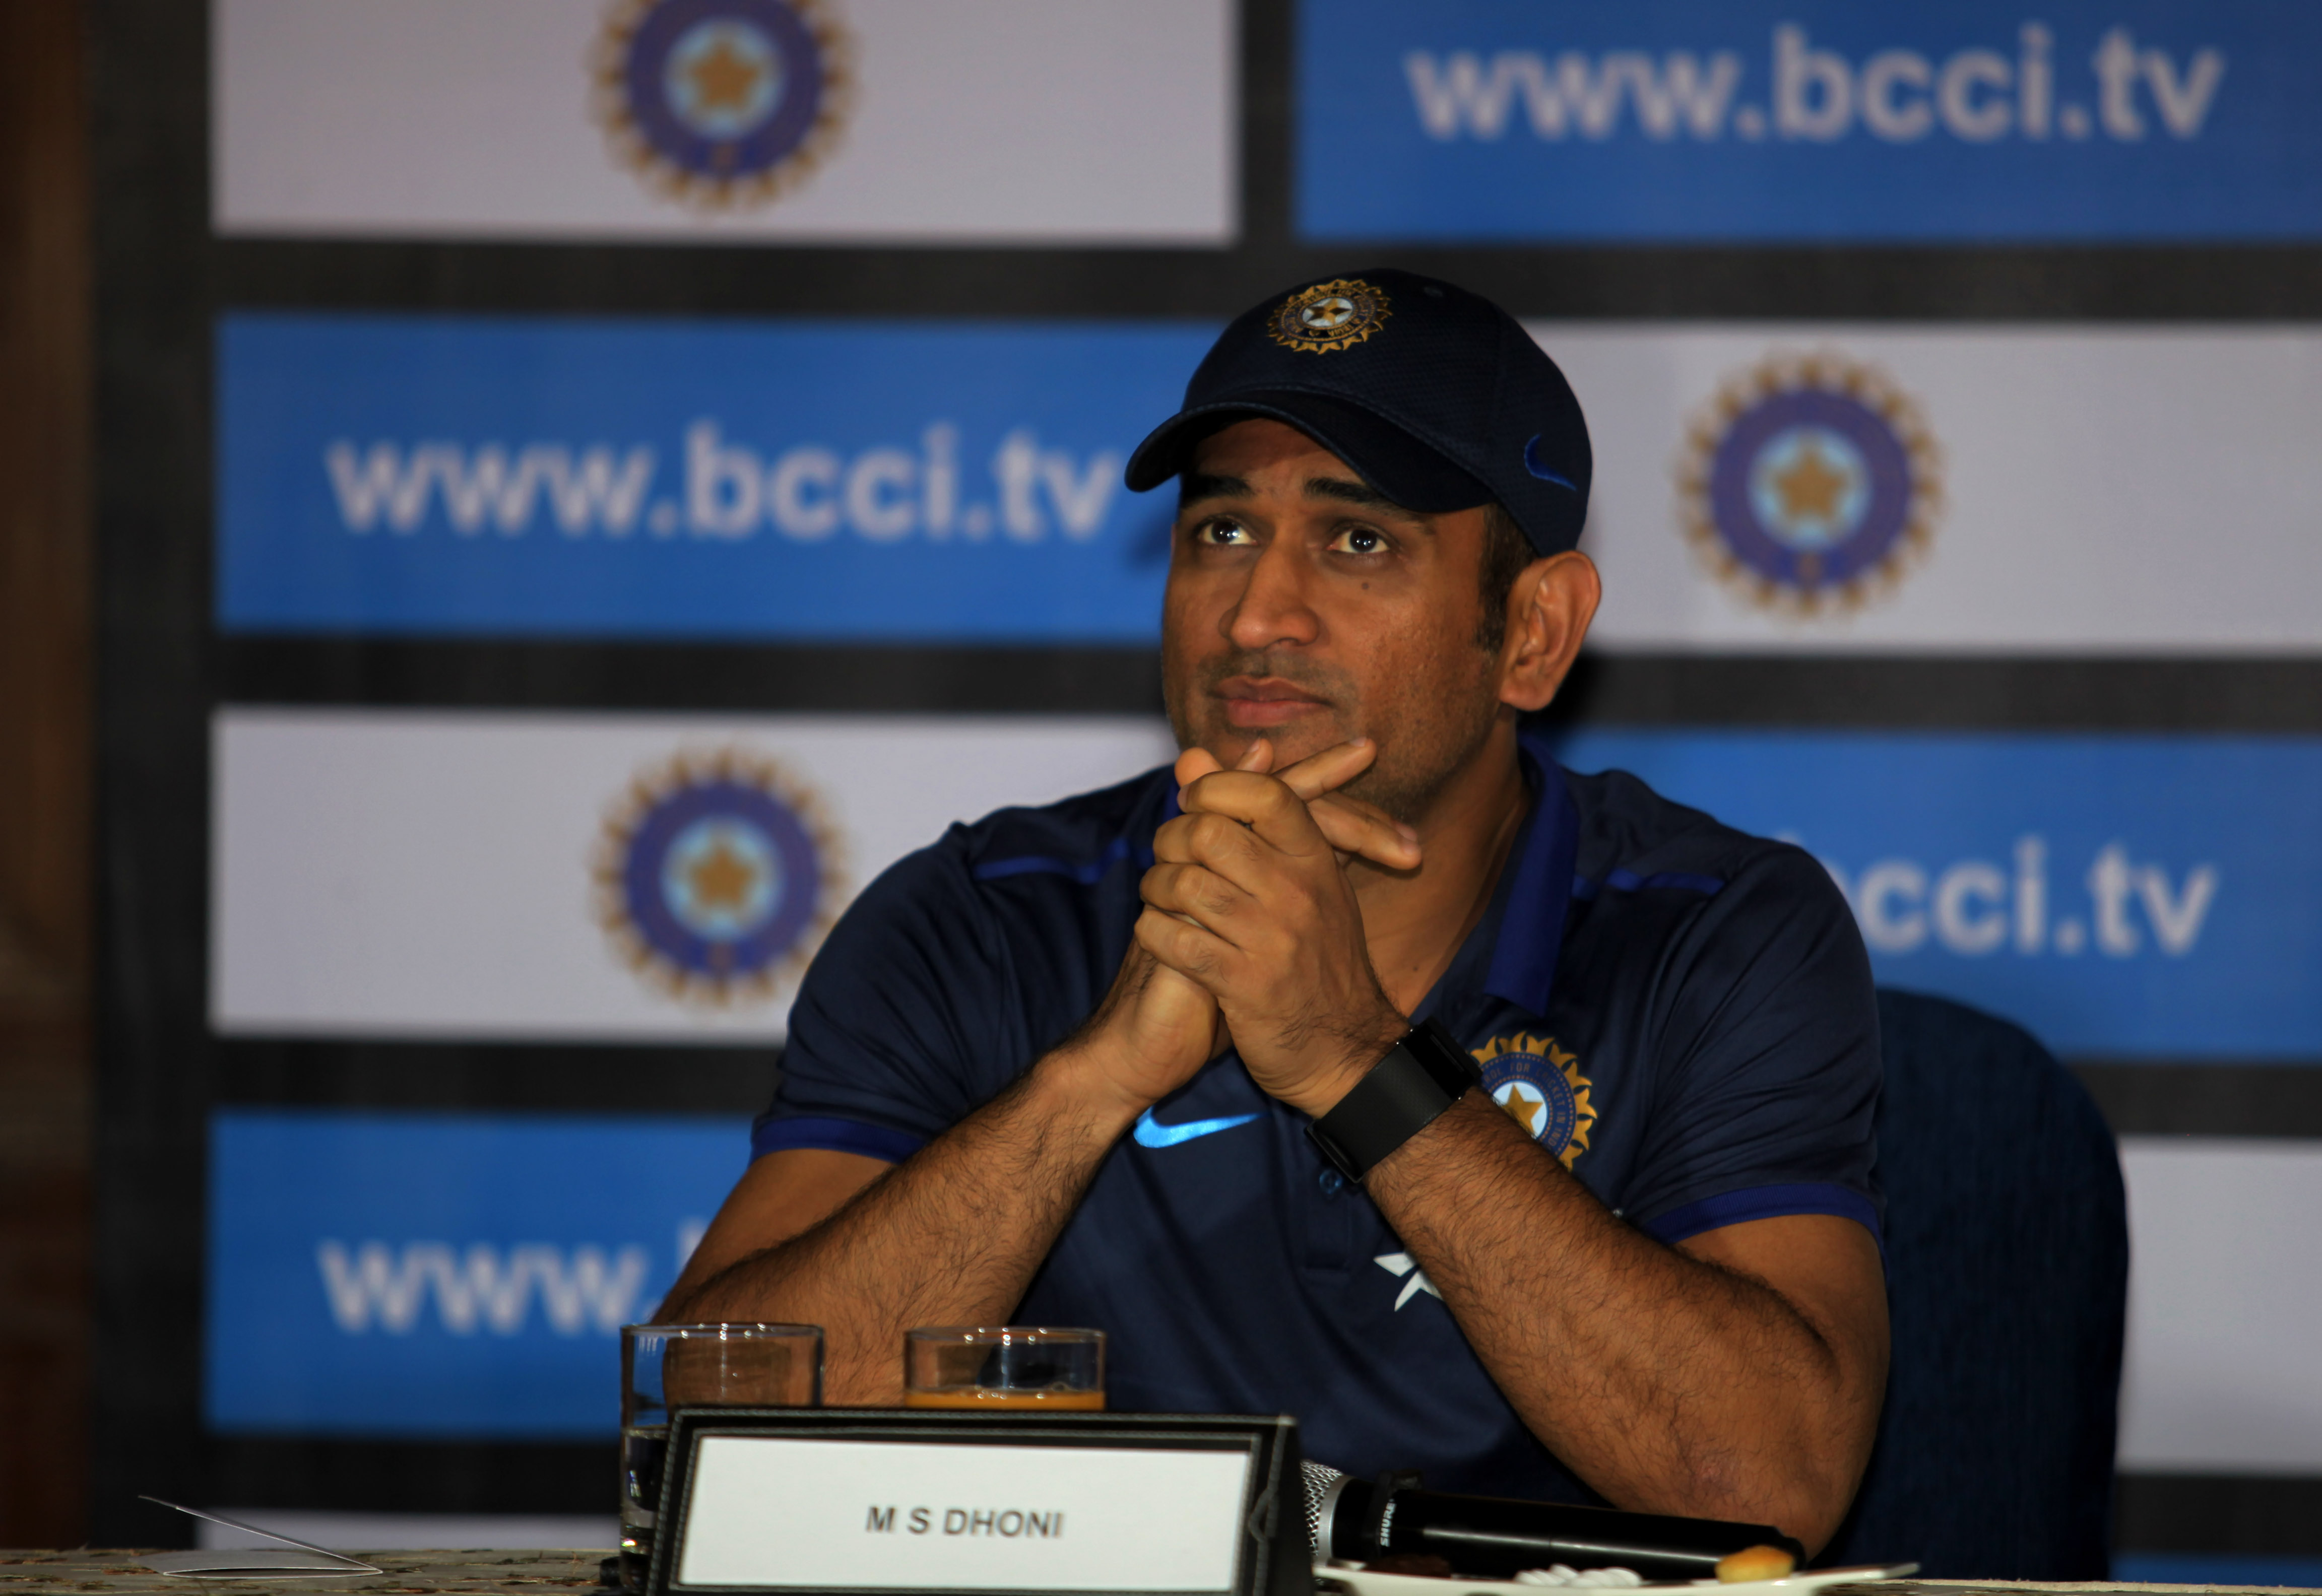 Indian Captain MS Dhoni at a press conference in Kolkata on Sunday. Express Photo by Partha Paul. 21.02.2016. *** Local Caption *** Indian Captain MS Dhoni at a press conference in Kolkata on Sunday. Express Photo by Partha Paul. 21.02.2016.